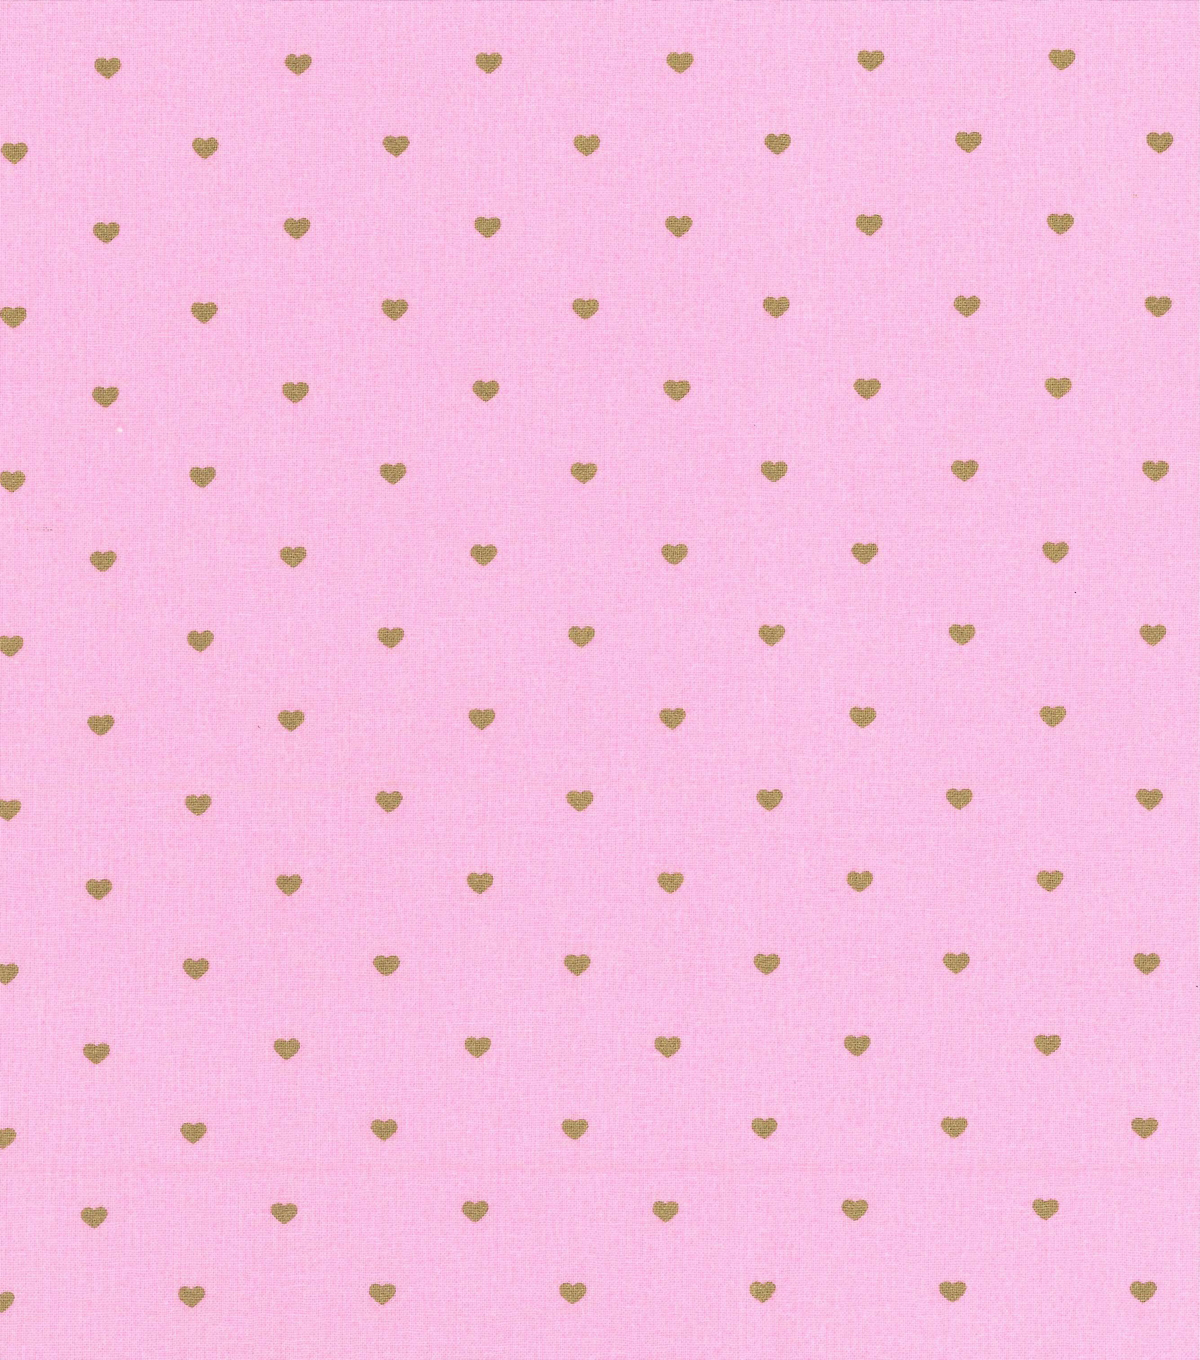 Keepsake Calico Cotton Fabric 43\u0022-Pink Heart Metallic